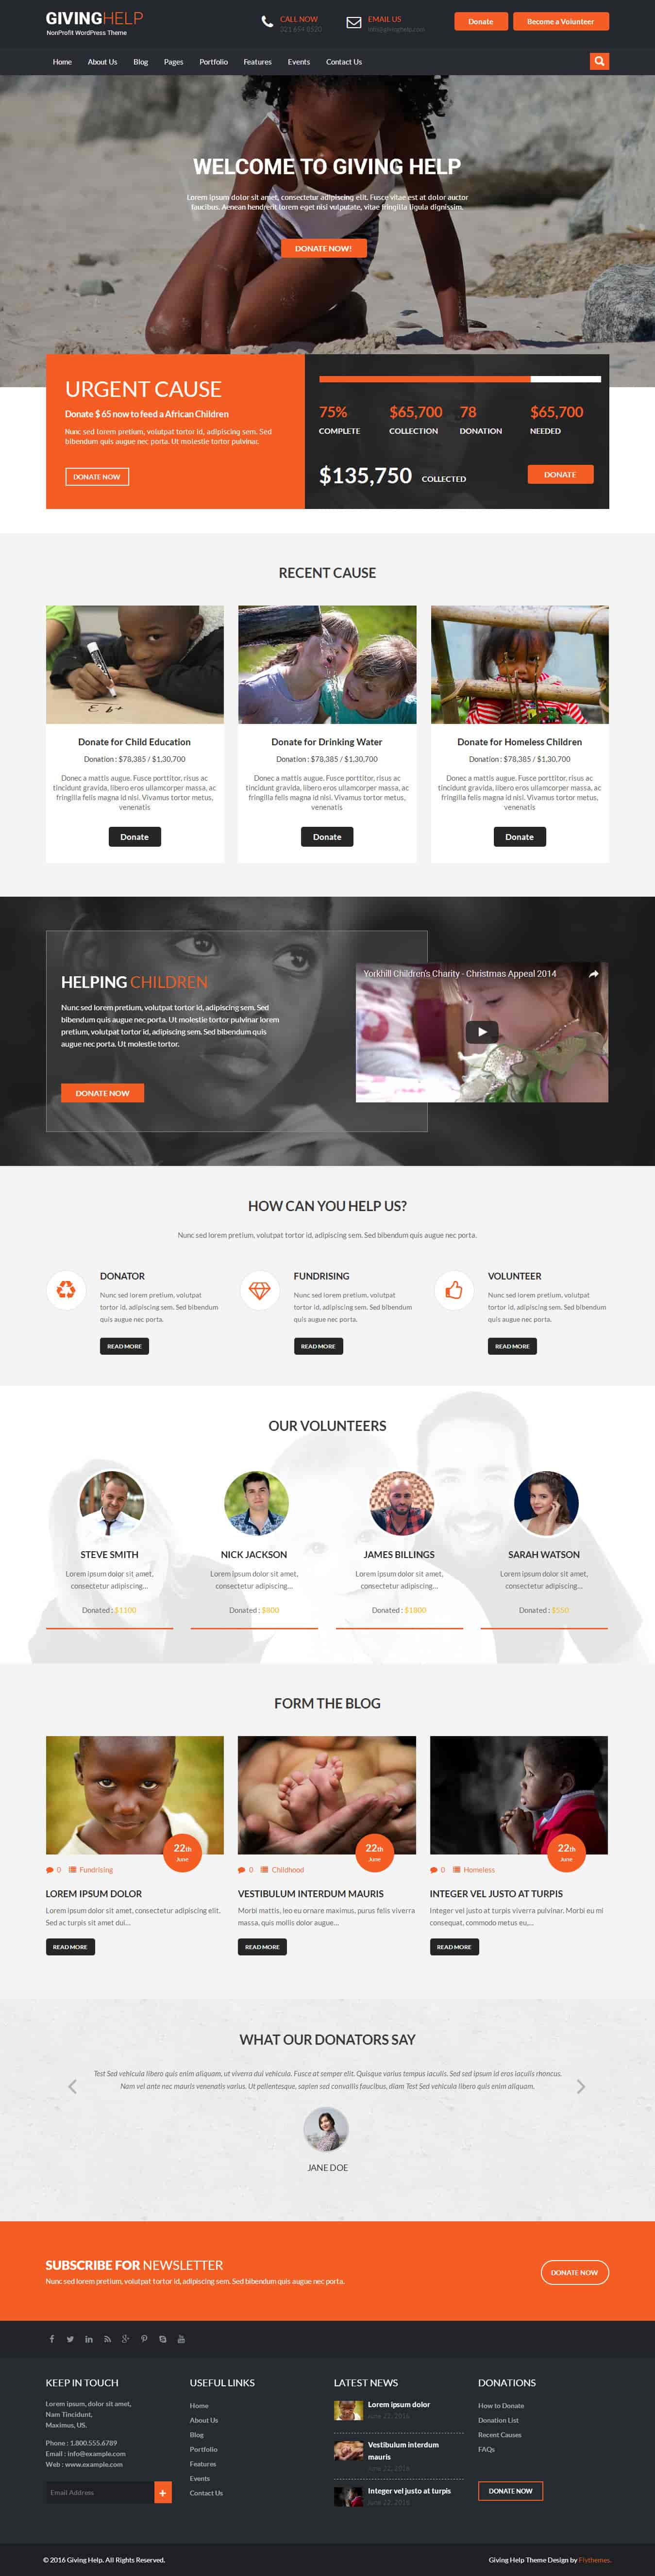 giving-help-wordpress-theme